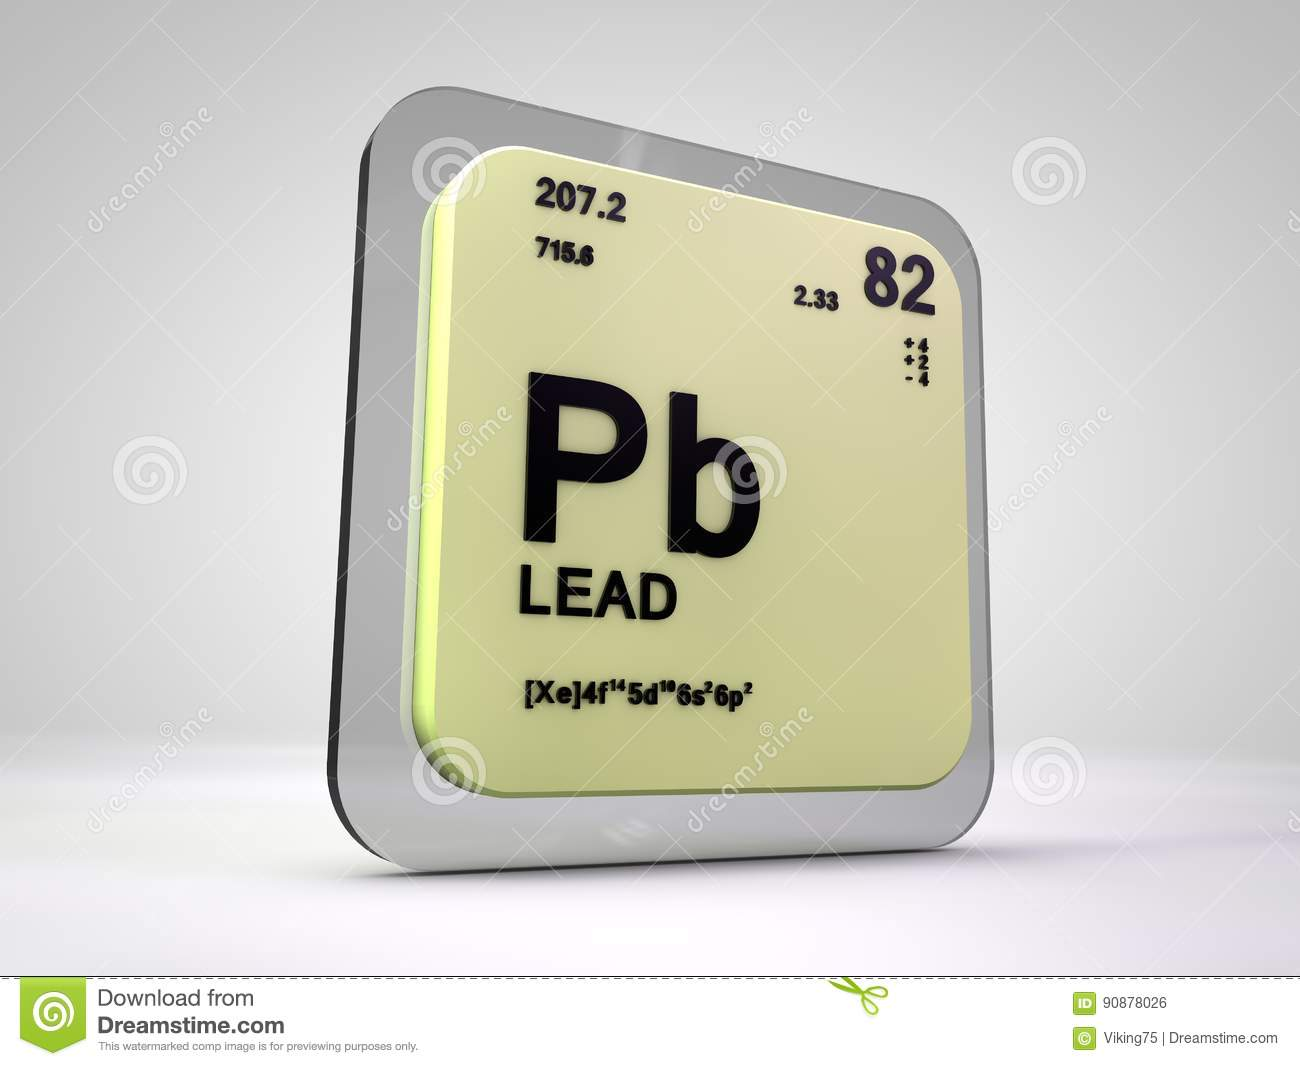 Lead periodic table facts image collections periodic table images periodic table for lead image collections periodic table images periodic table for lead image collections periodic gamestrikefo Gallery